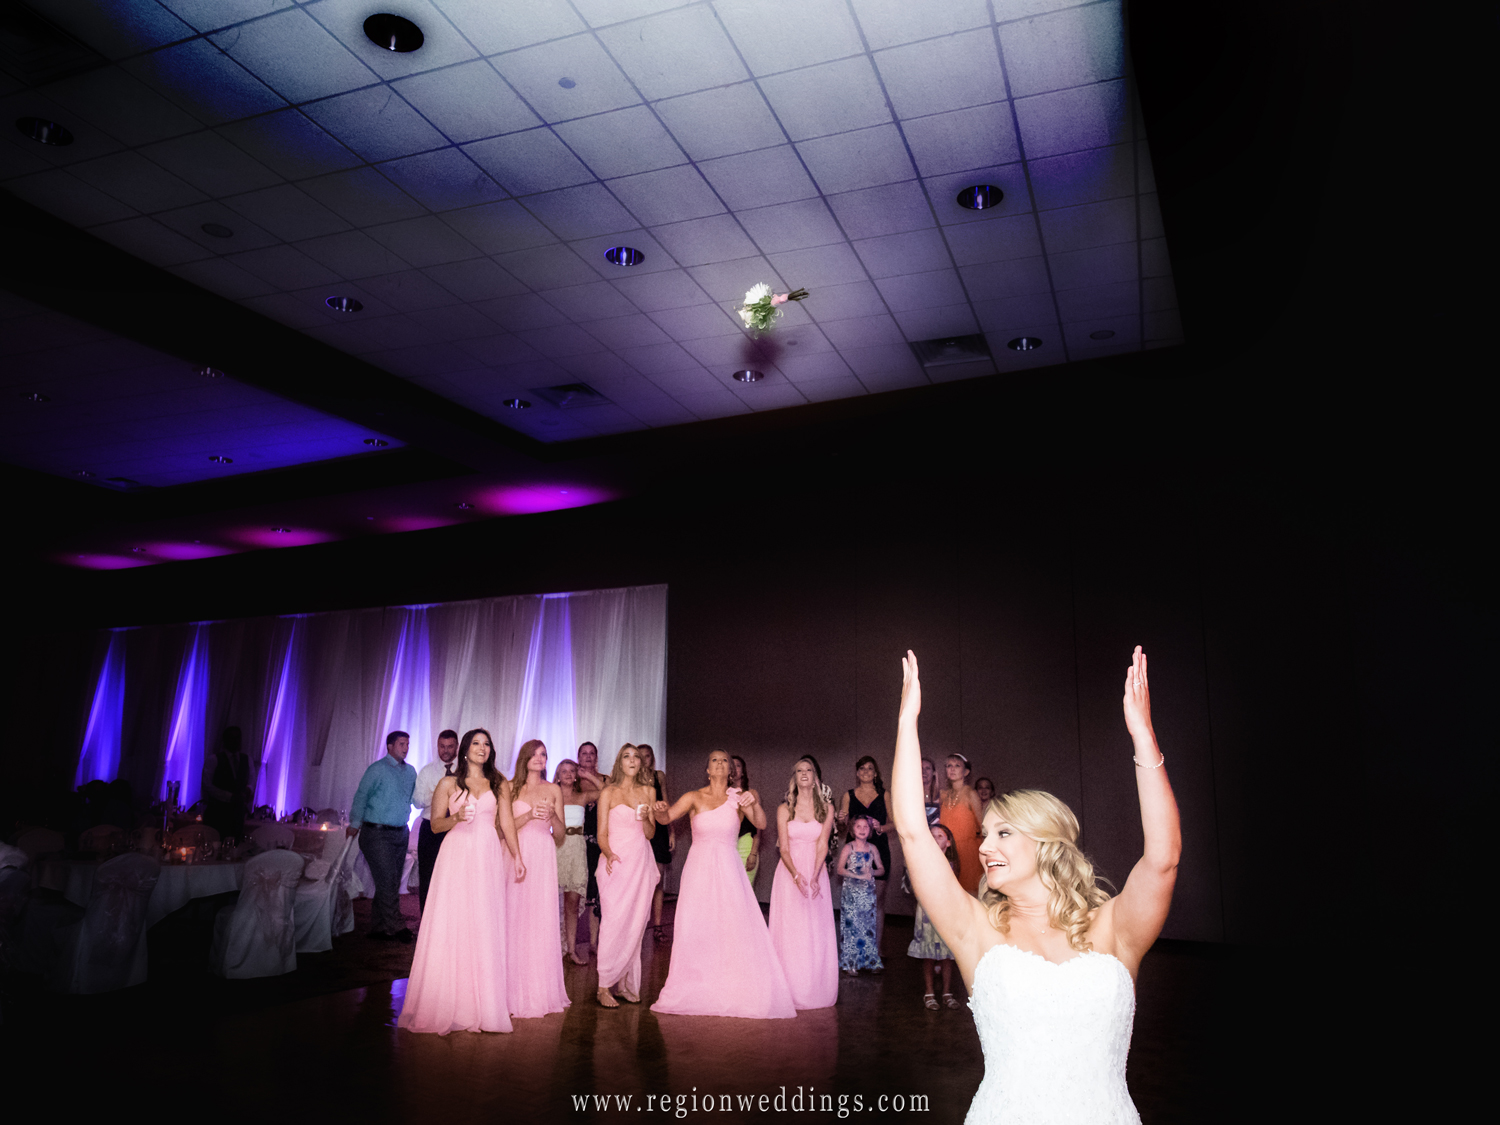 The single girls await the landing of the bouquet.